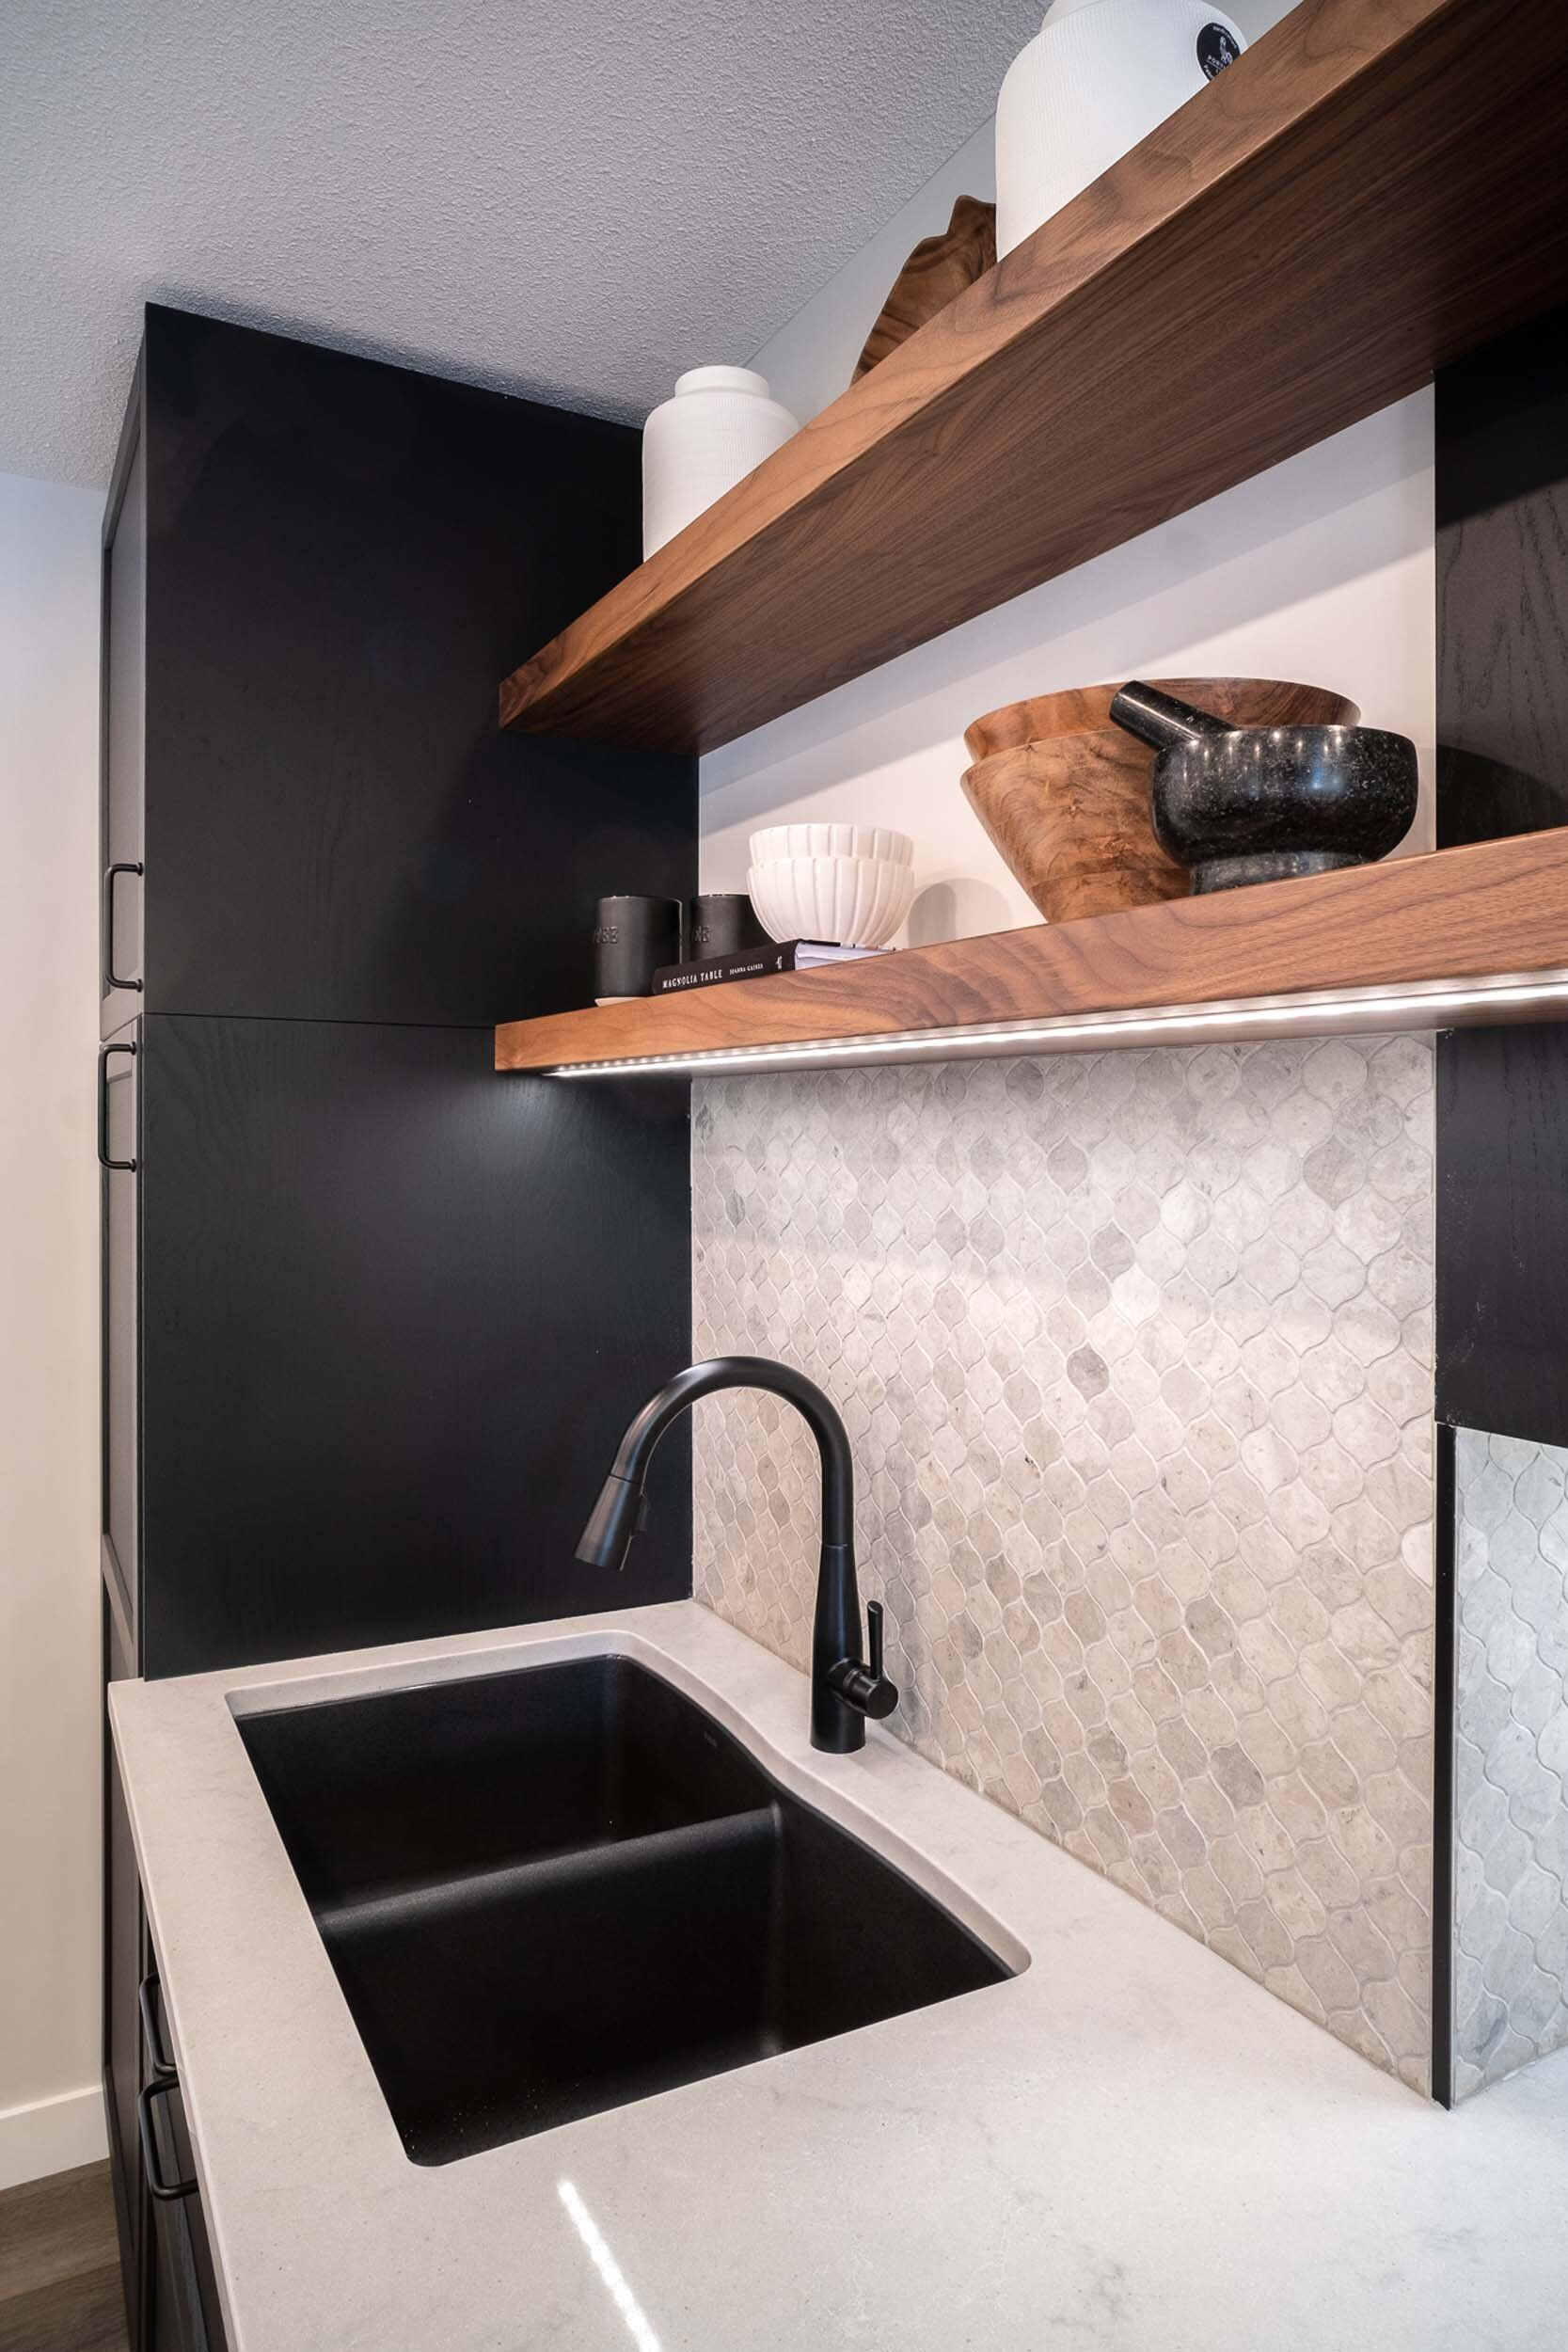 Led Strip Lighting Under Your Kitchen Upper Cabinets And Kitchen Floating Shelves Are Great Wa Cabinets And Countertops Upper Kitchen Cabinets Floating Shelves